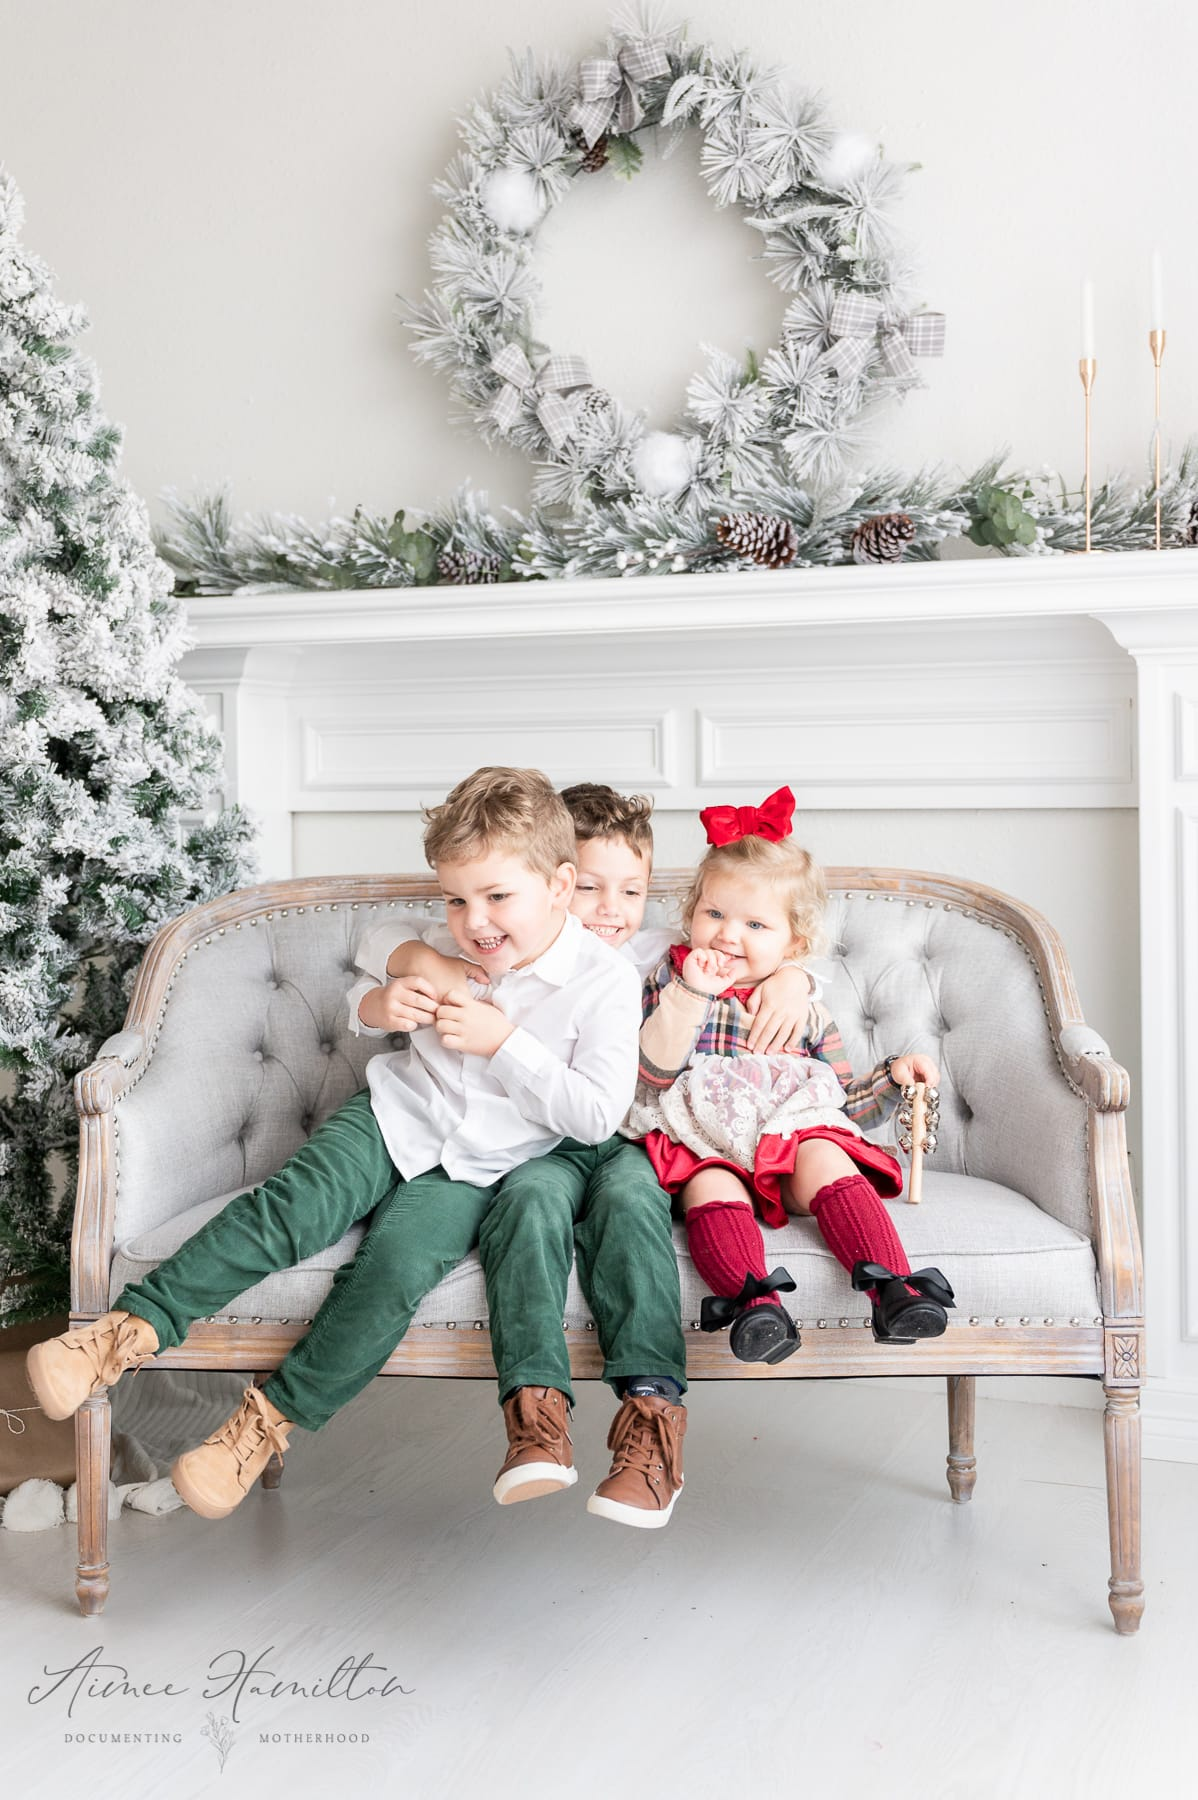 Dallas child photography at Christmas